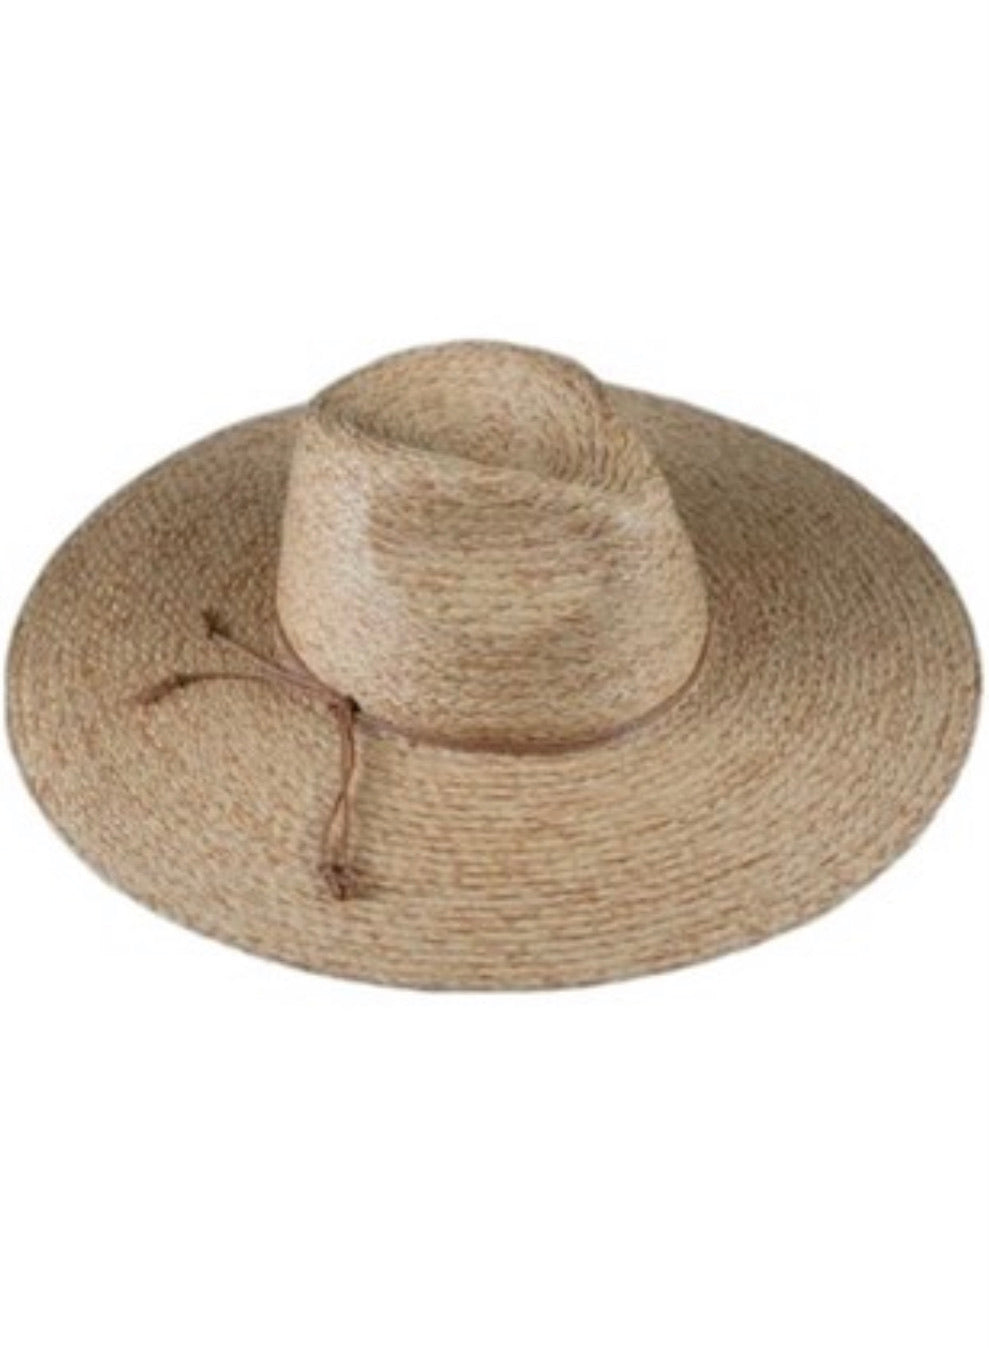 Sun Ray Straw Floppy Hat